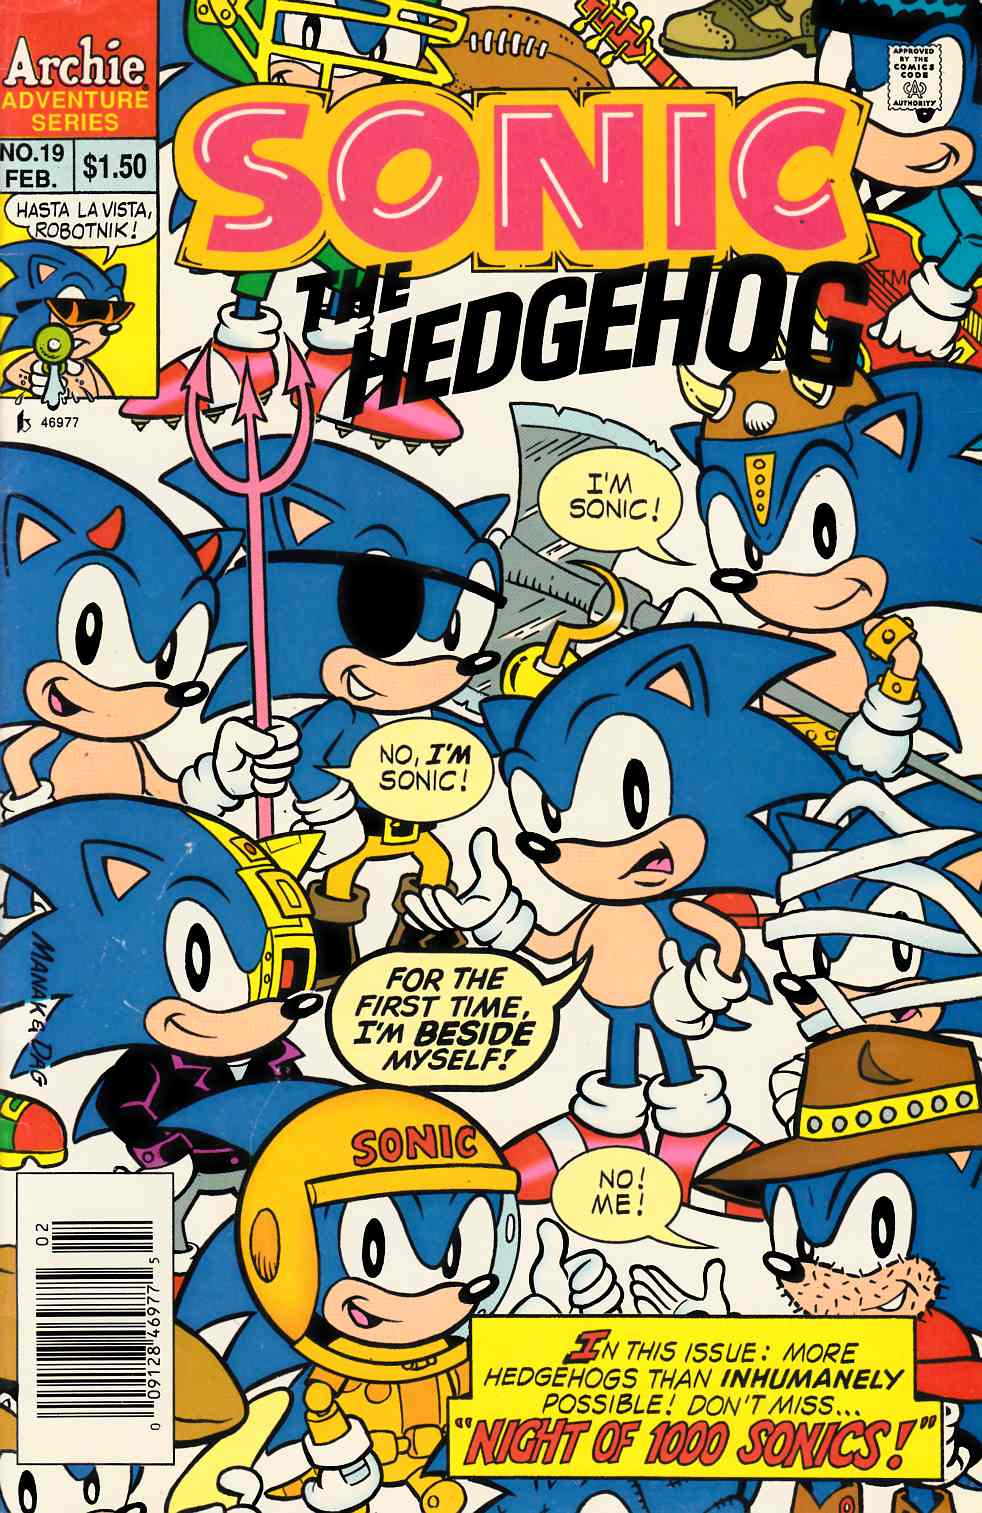 Sonic the Hedgehog #19 Newsstand Edition Very Good (4.0) [Archie Comic] THUMBNAIL